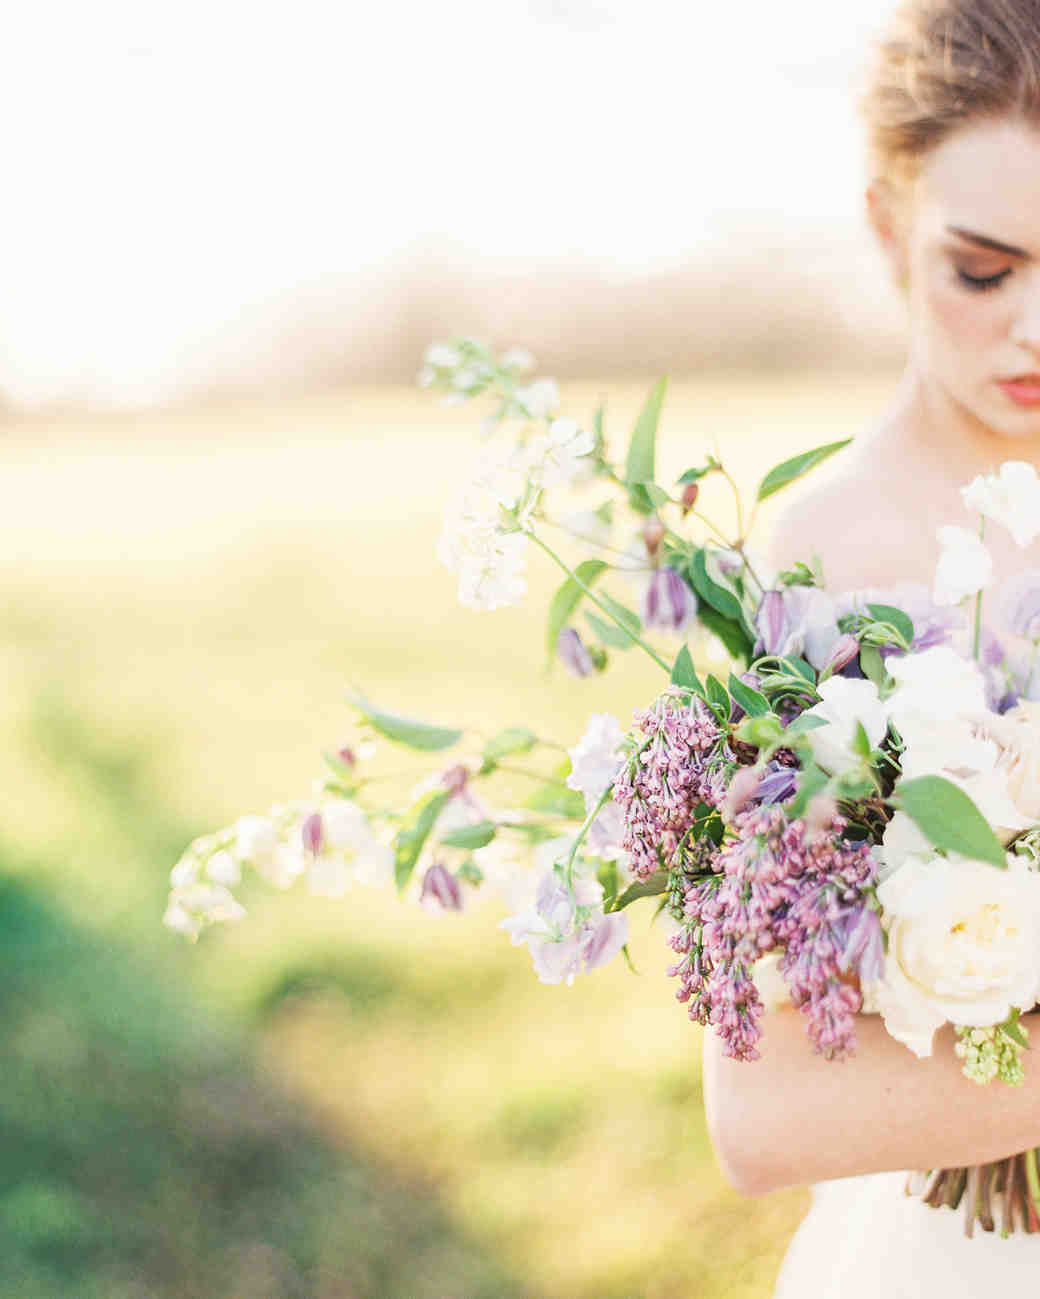 Spring Wedding Flowers Pictures: 53 Ideas For Your Spring Wedding Bouquet